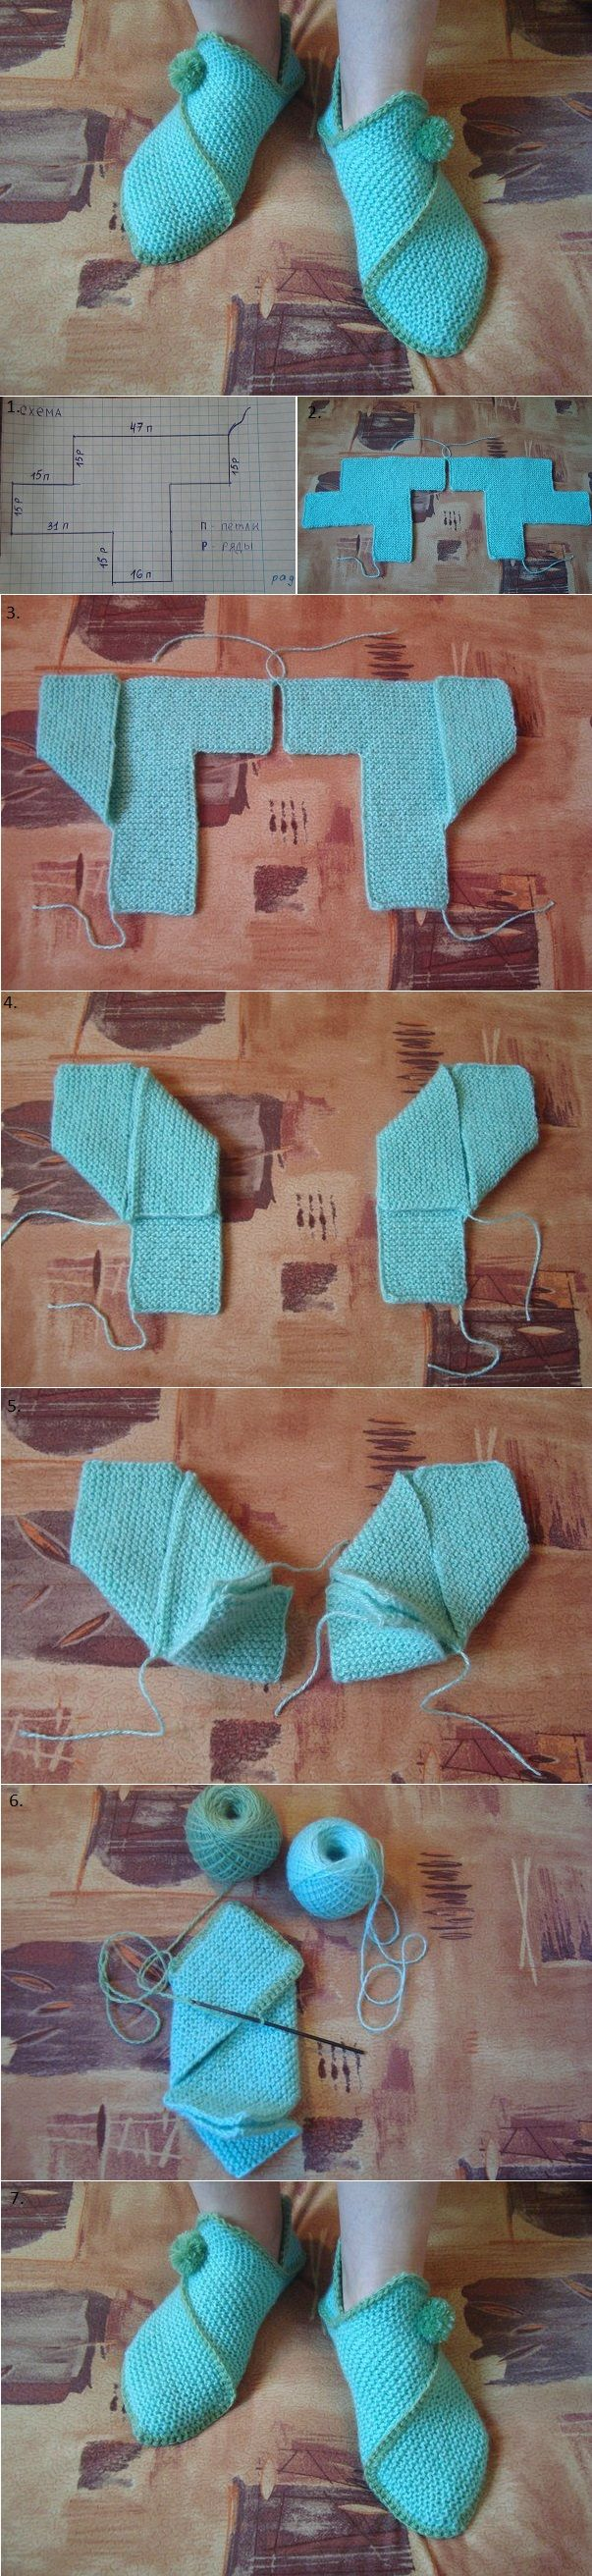 Home Slippers - DIY...... this is knitting, but I bet I could use this to crochet some